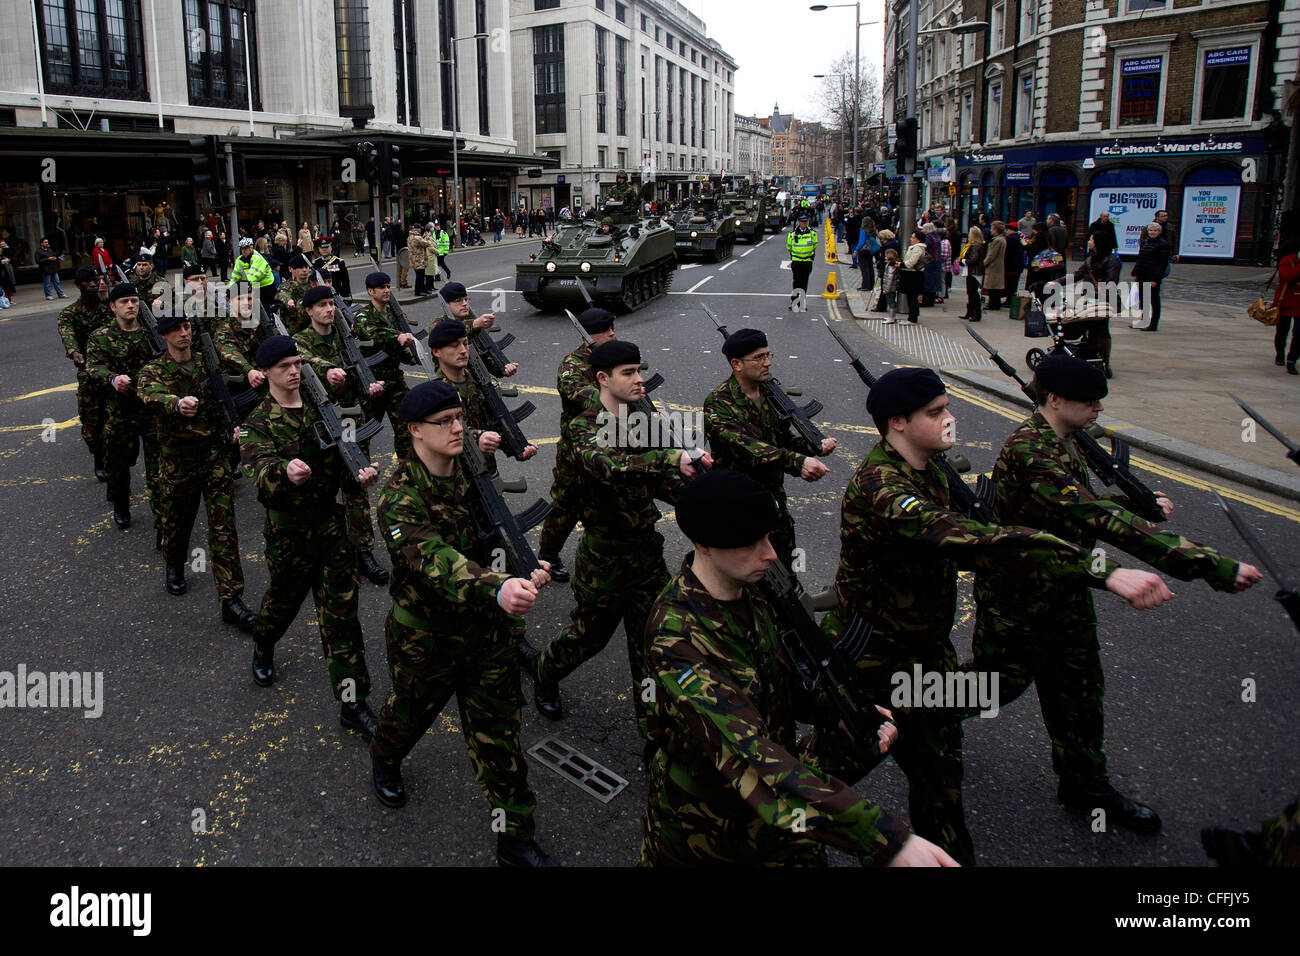 Territorial Army (TA) soldiers from The Royal Yeomanry Regiment march through the streets of Kensington Army parade - Stock Image